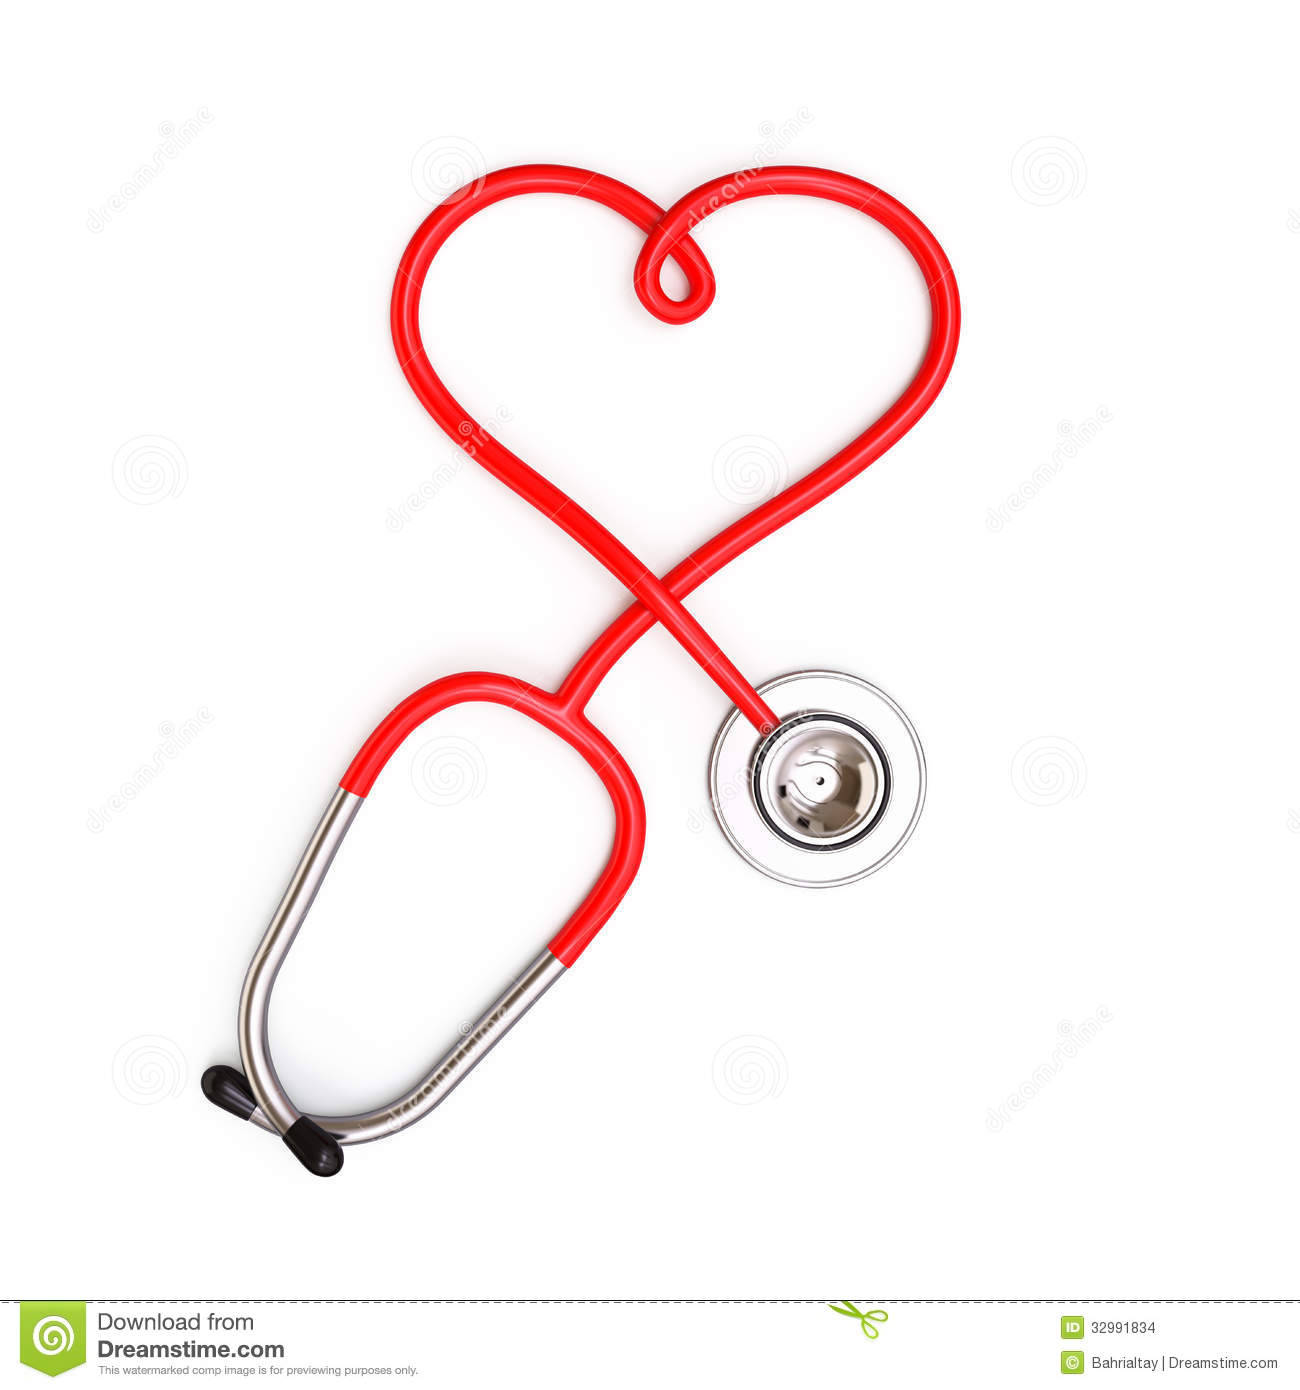 Heart Shape From Stethoscope On White Background  3d Render